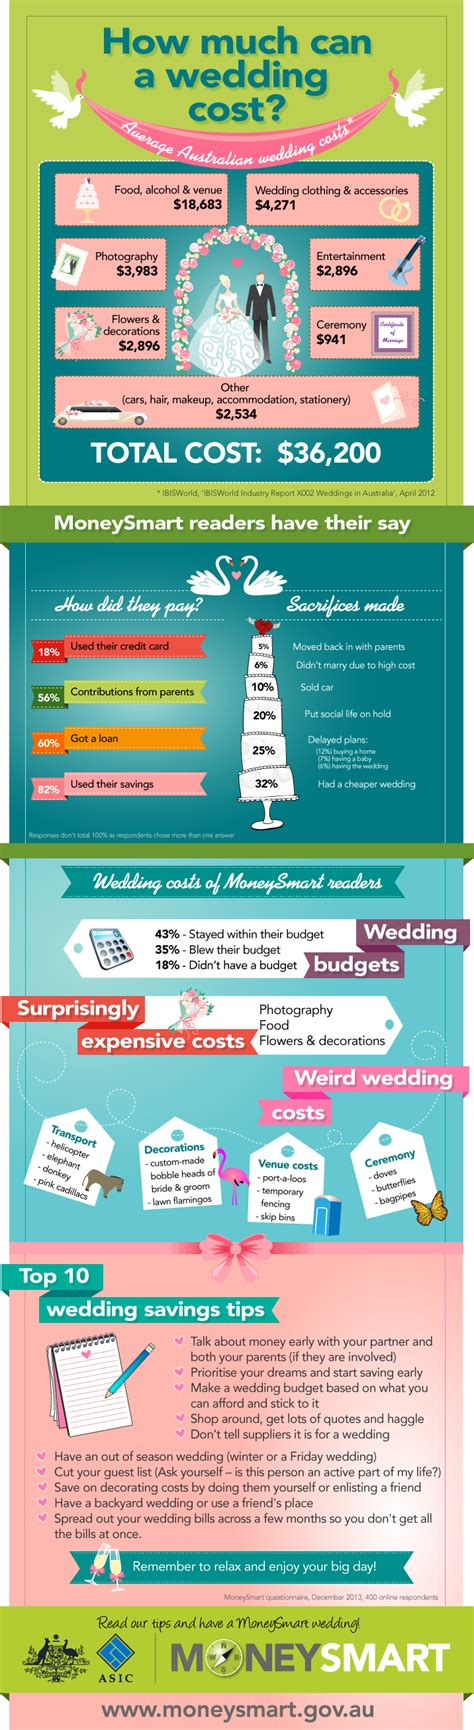 average wedding photographer cost australia how much can a wedding cost asic s moneysmart